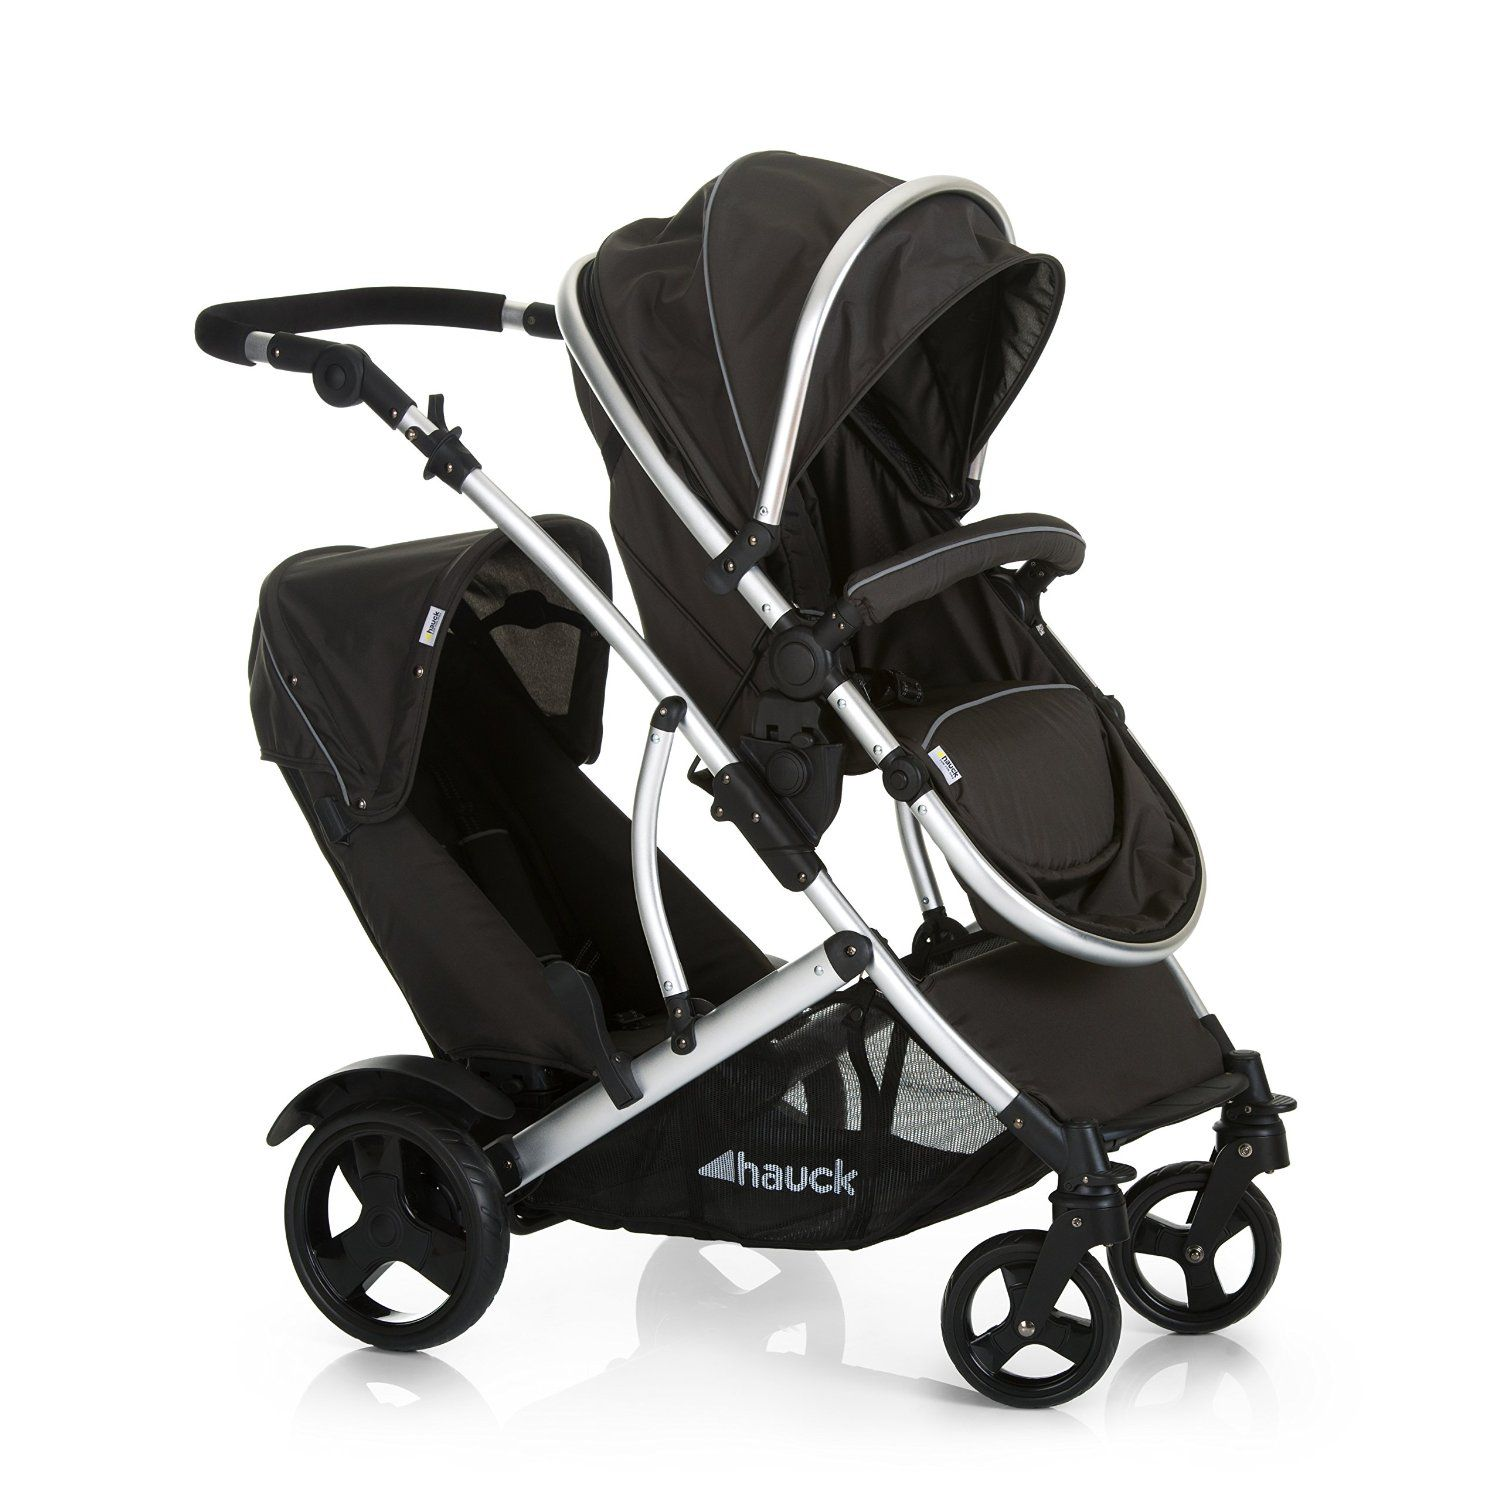 New Hauck Charcoal Black Duett 2 Double Tandem Pushchair